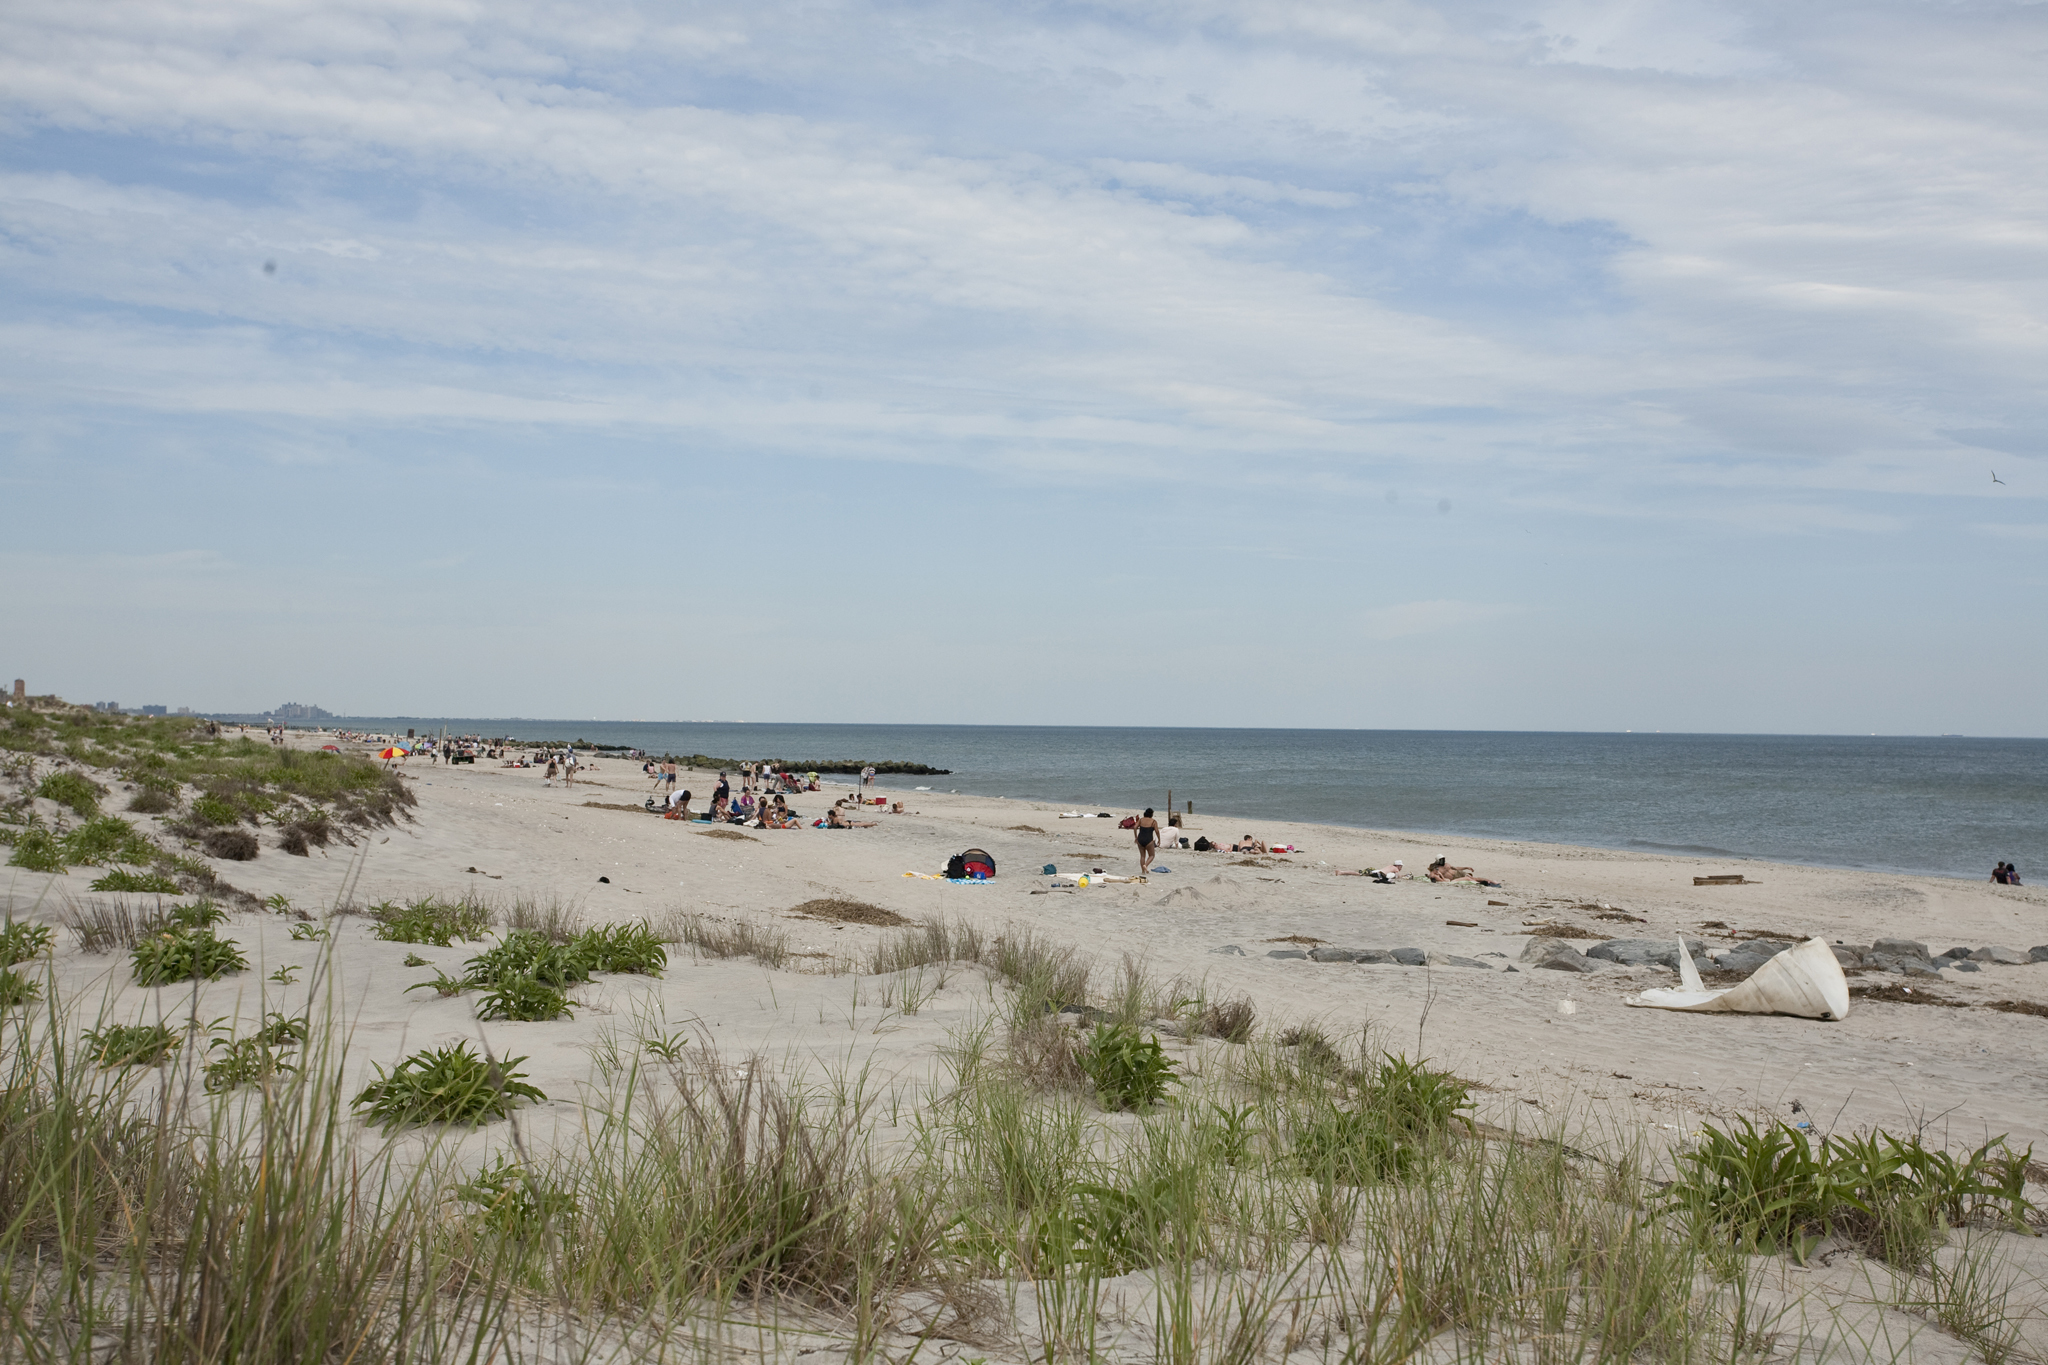 Best beaches nyc has nearby from coney island to rockaway for Memorial day weekend getaways near nyc